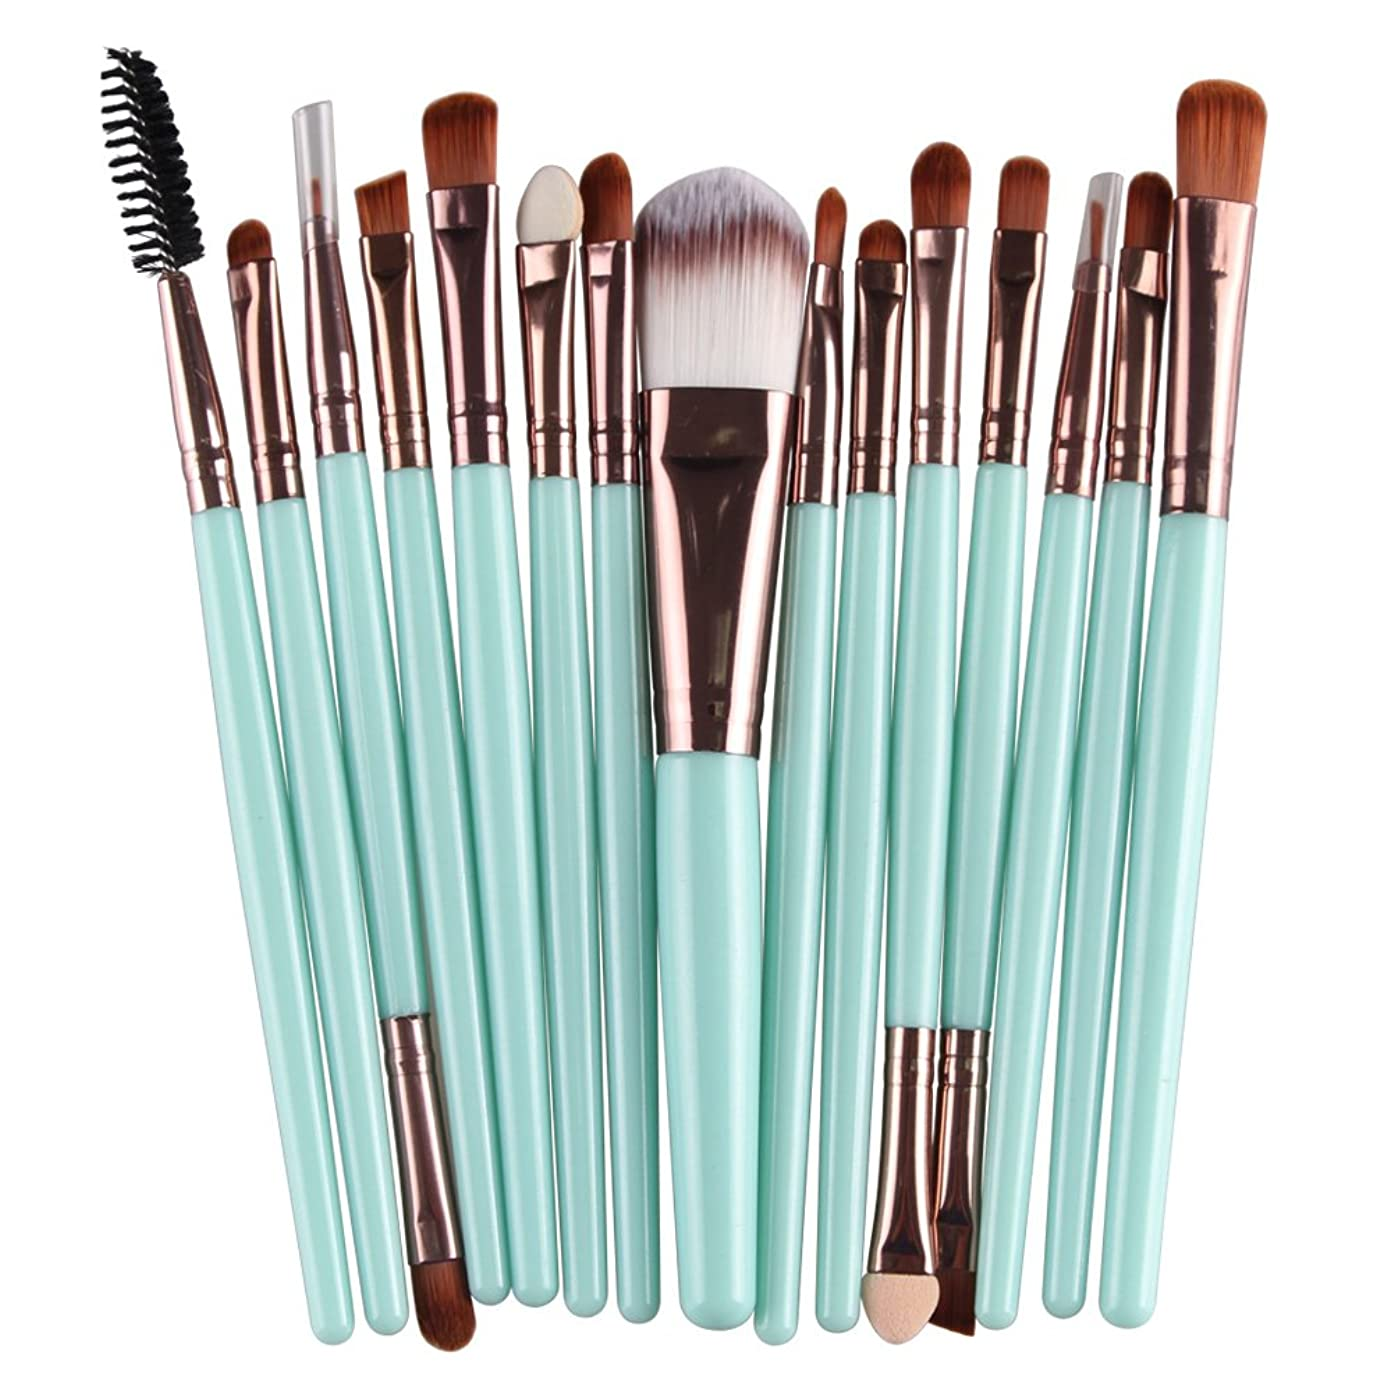 適用済み辛な抑止するProfessional Pro 15 Pcs/Sets Eye Shadow Foundation Eyebrow Lip Brush Makeup Brushes Cosmetic Tool Make Up Eye Brushes Set